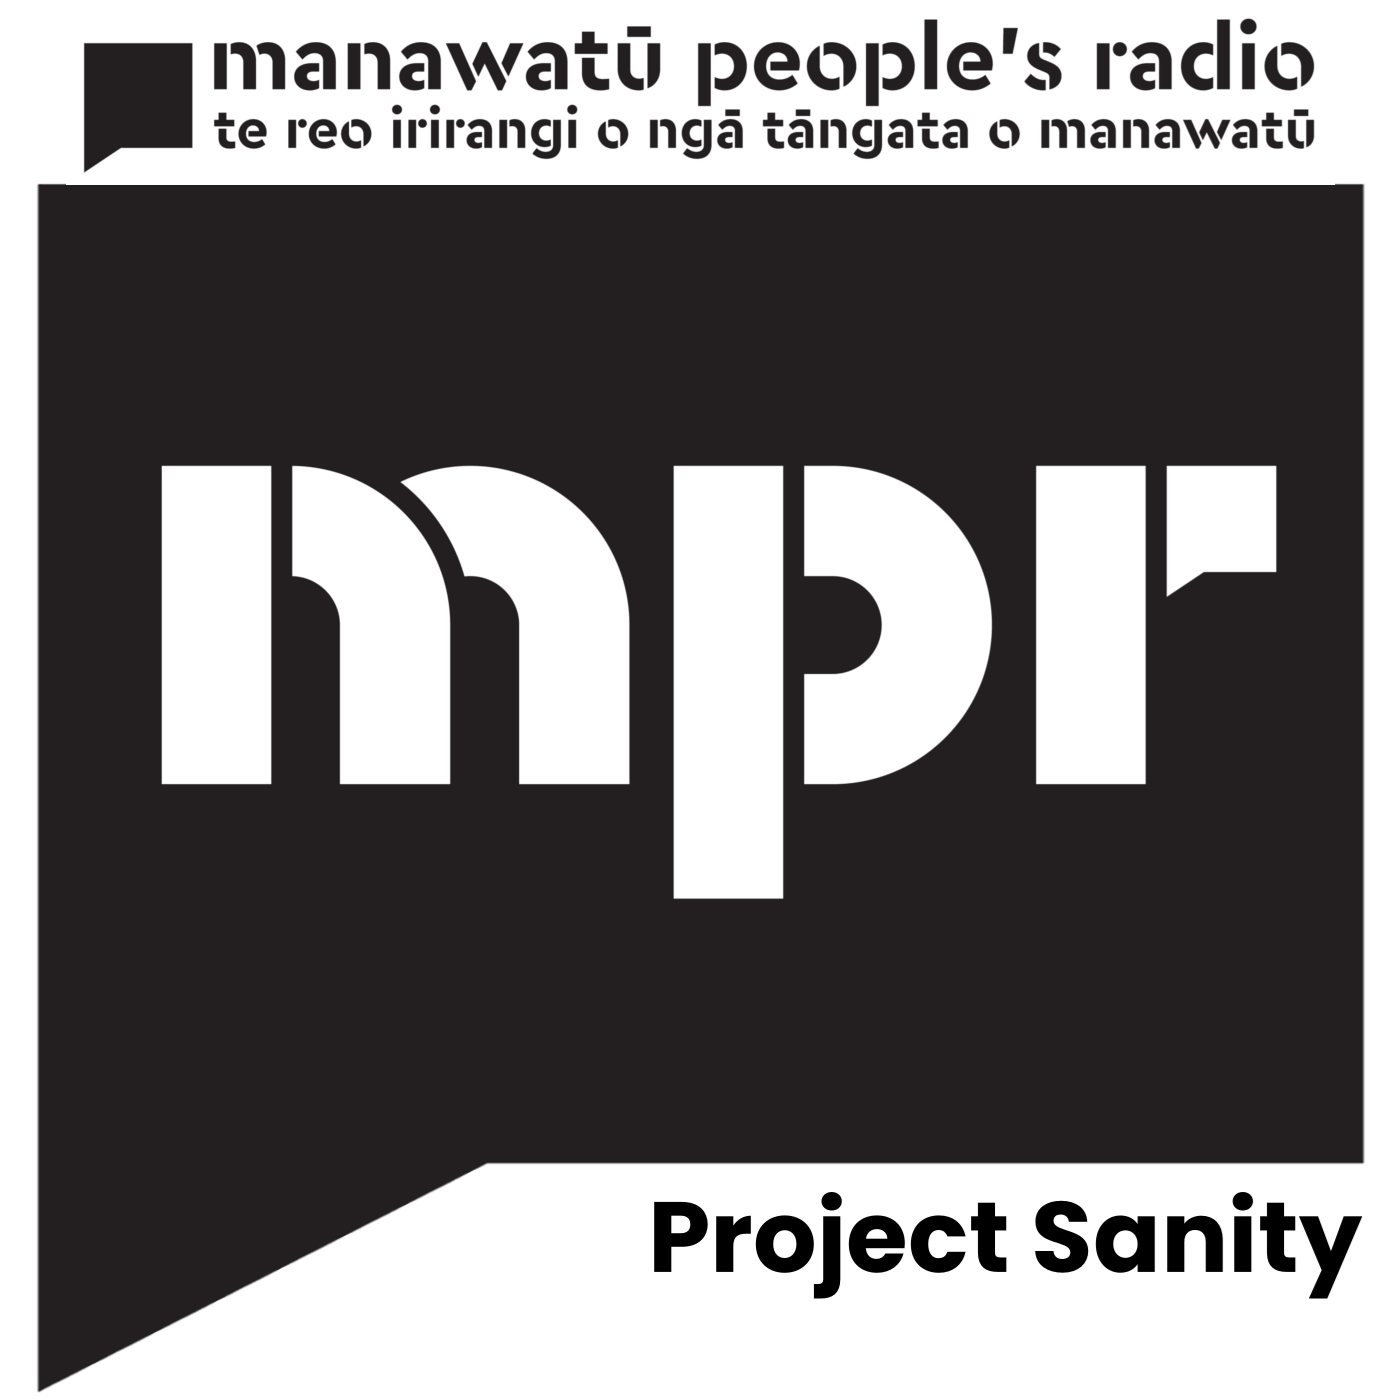 https://static.accessradio.org/StationFolder/manawatu/Images/MPR - ProjectSanity.png